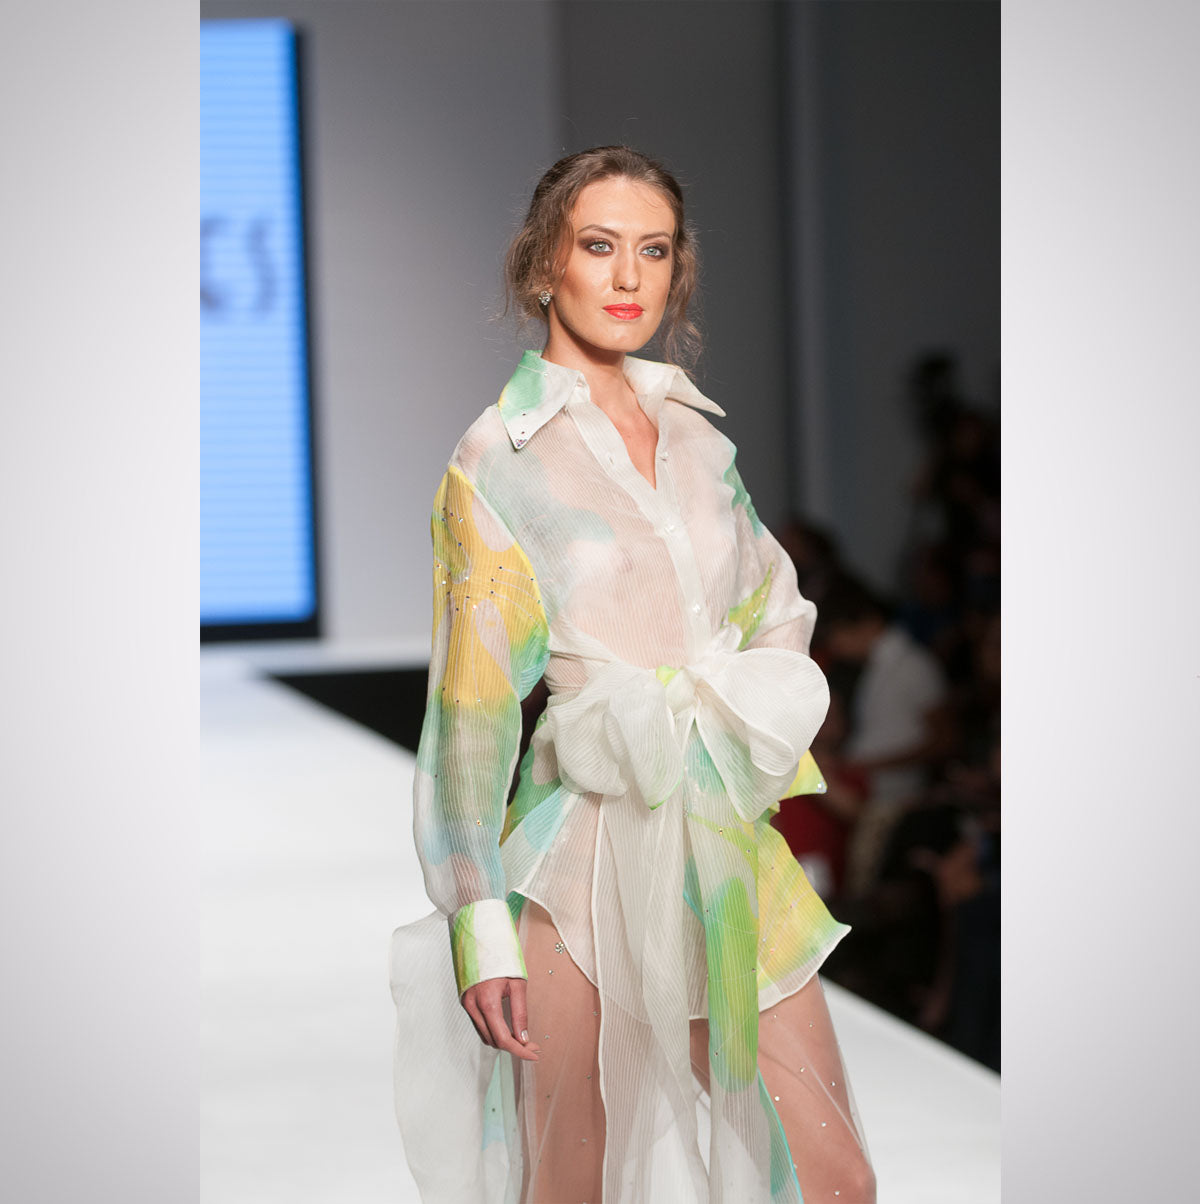 Heather Jones Hand-painted Silk Organza Shirt and Jewel Sheer Pants